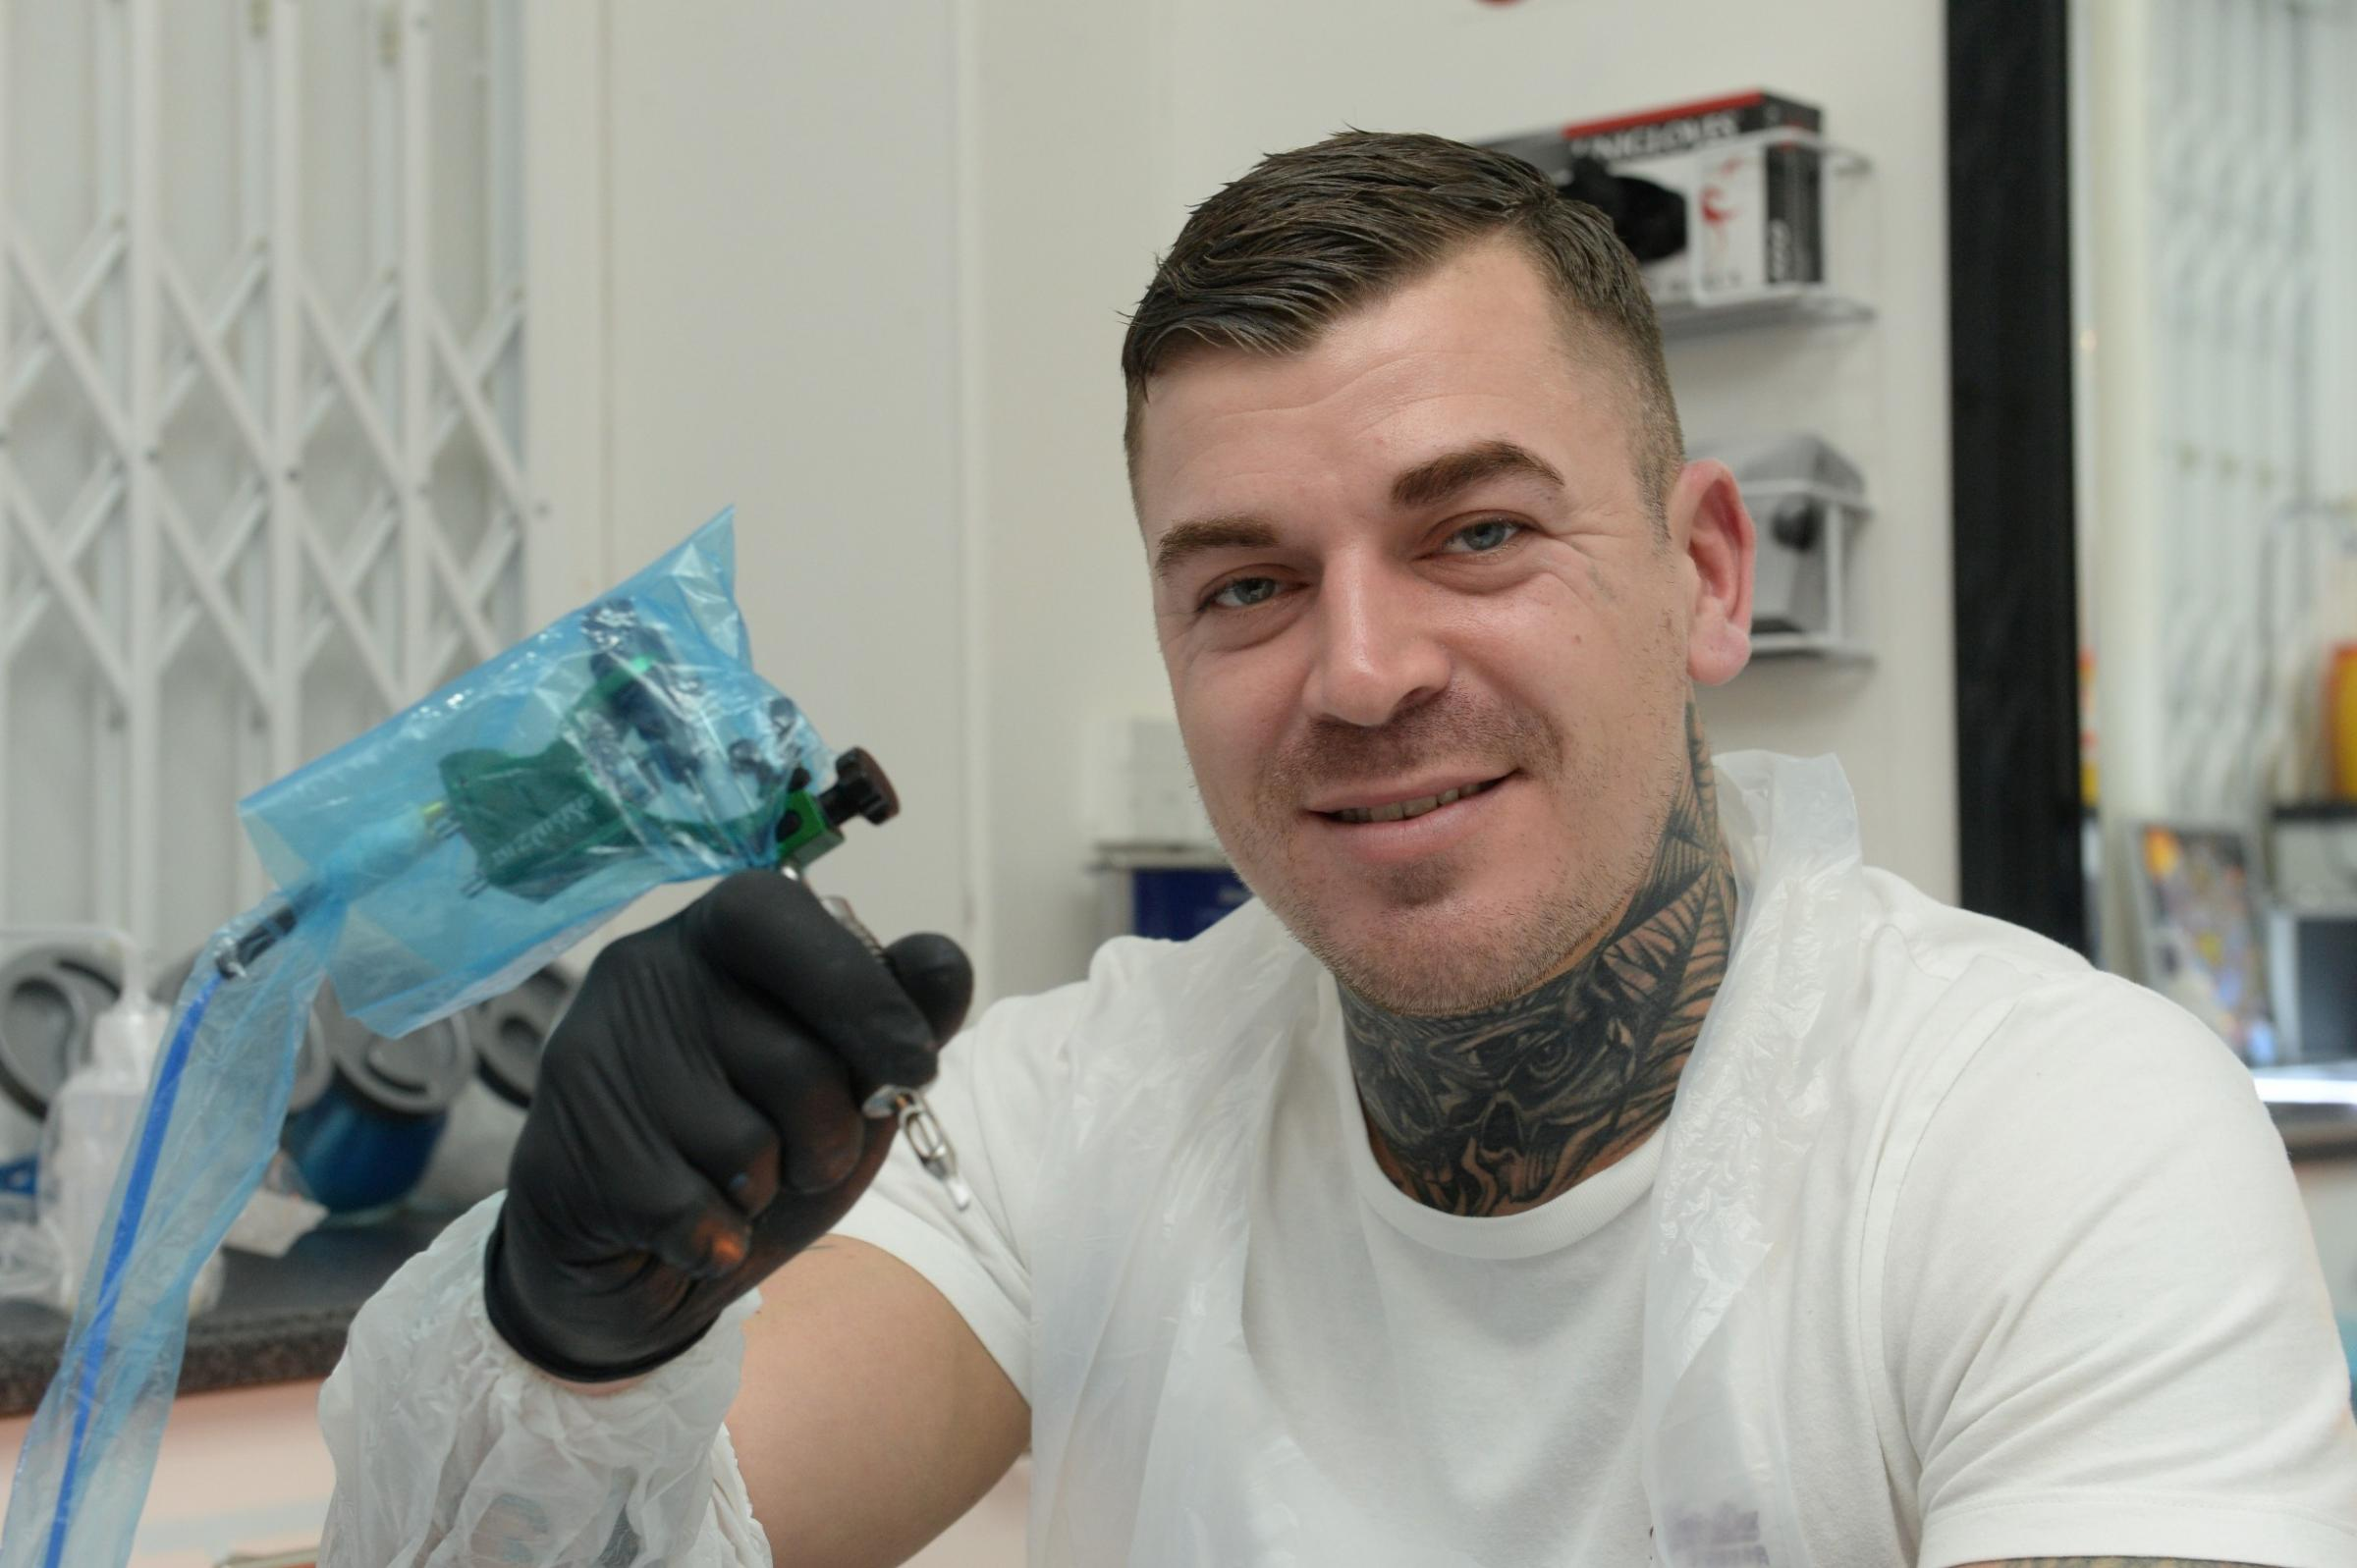 INKinc the Tattoo Lounge, in Blaenavon, Pontypool, run by tattooist Aron Walton, received the top rating from the local authority, Torfaen Council. It has become the first in the UK to receive a rating from the Tattoo Hygiene Rating Scheme. Pictured is Ar